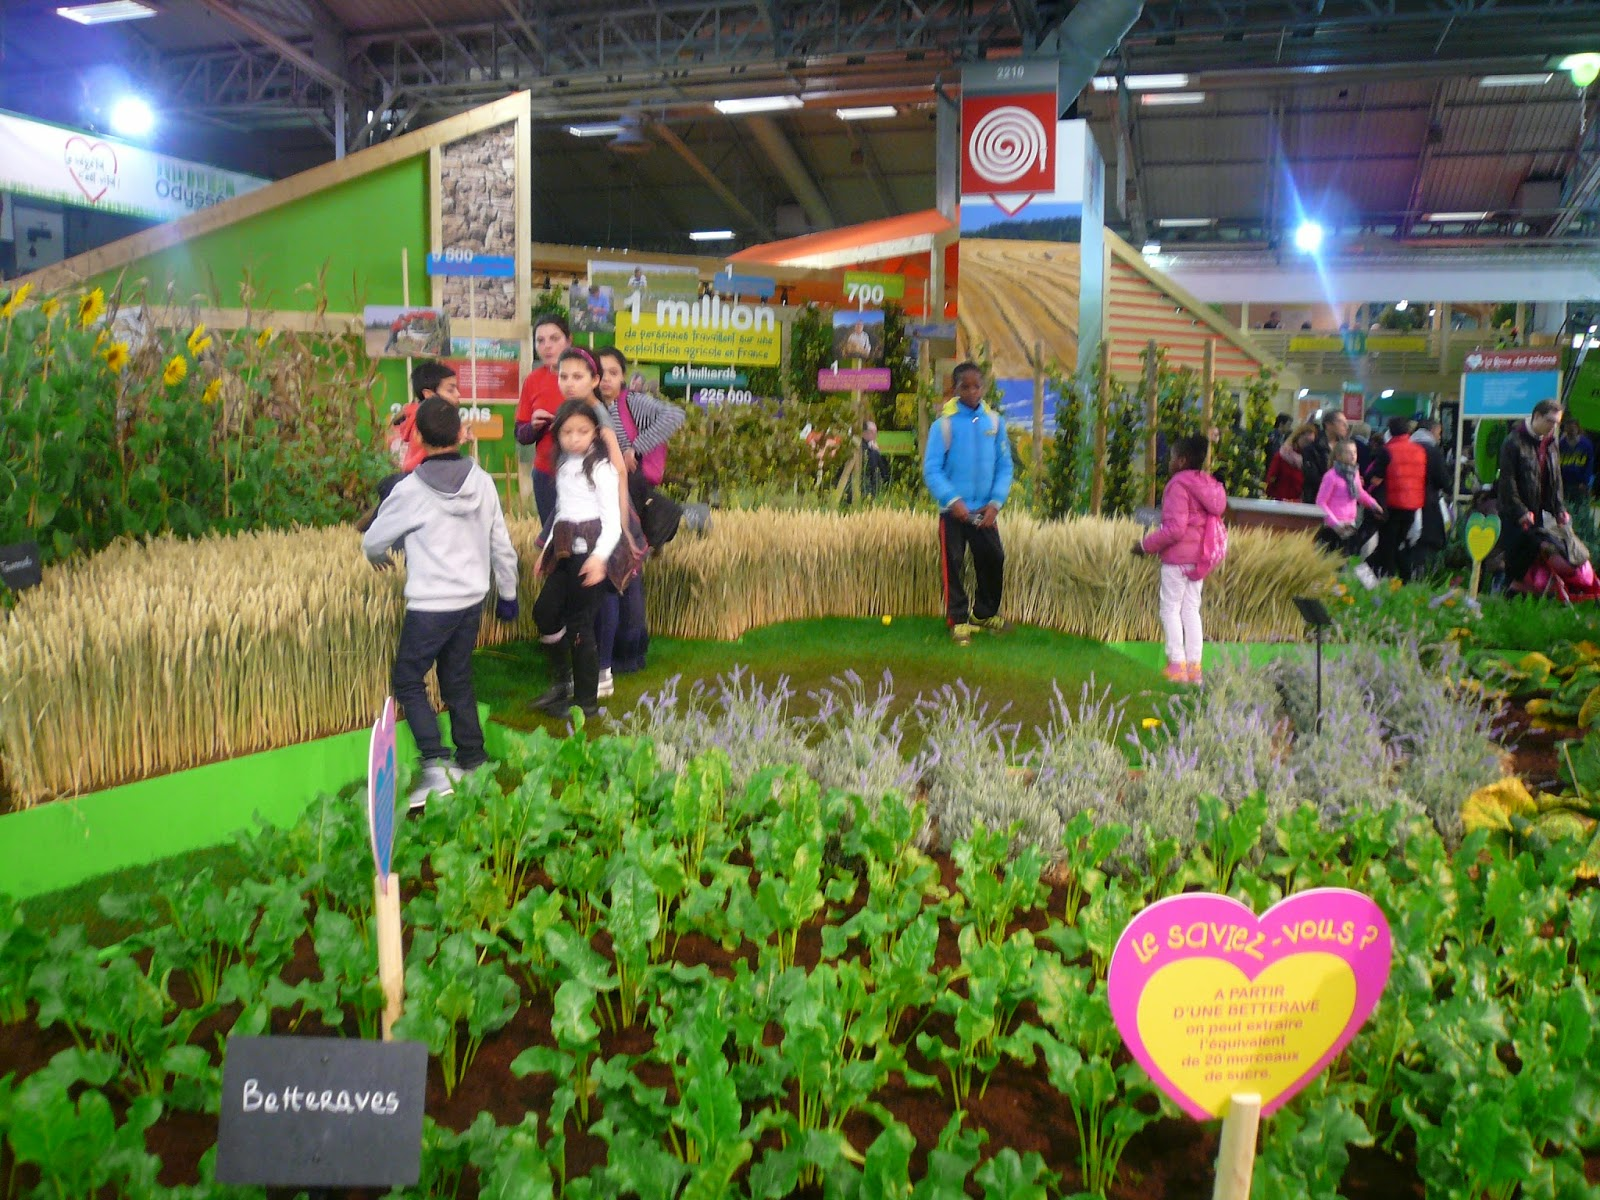 Le Salon De L Agriculture A Paris Positive Eating Positive Living Quelques Instants Du Salon De L